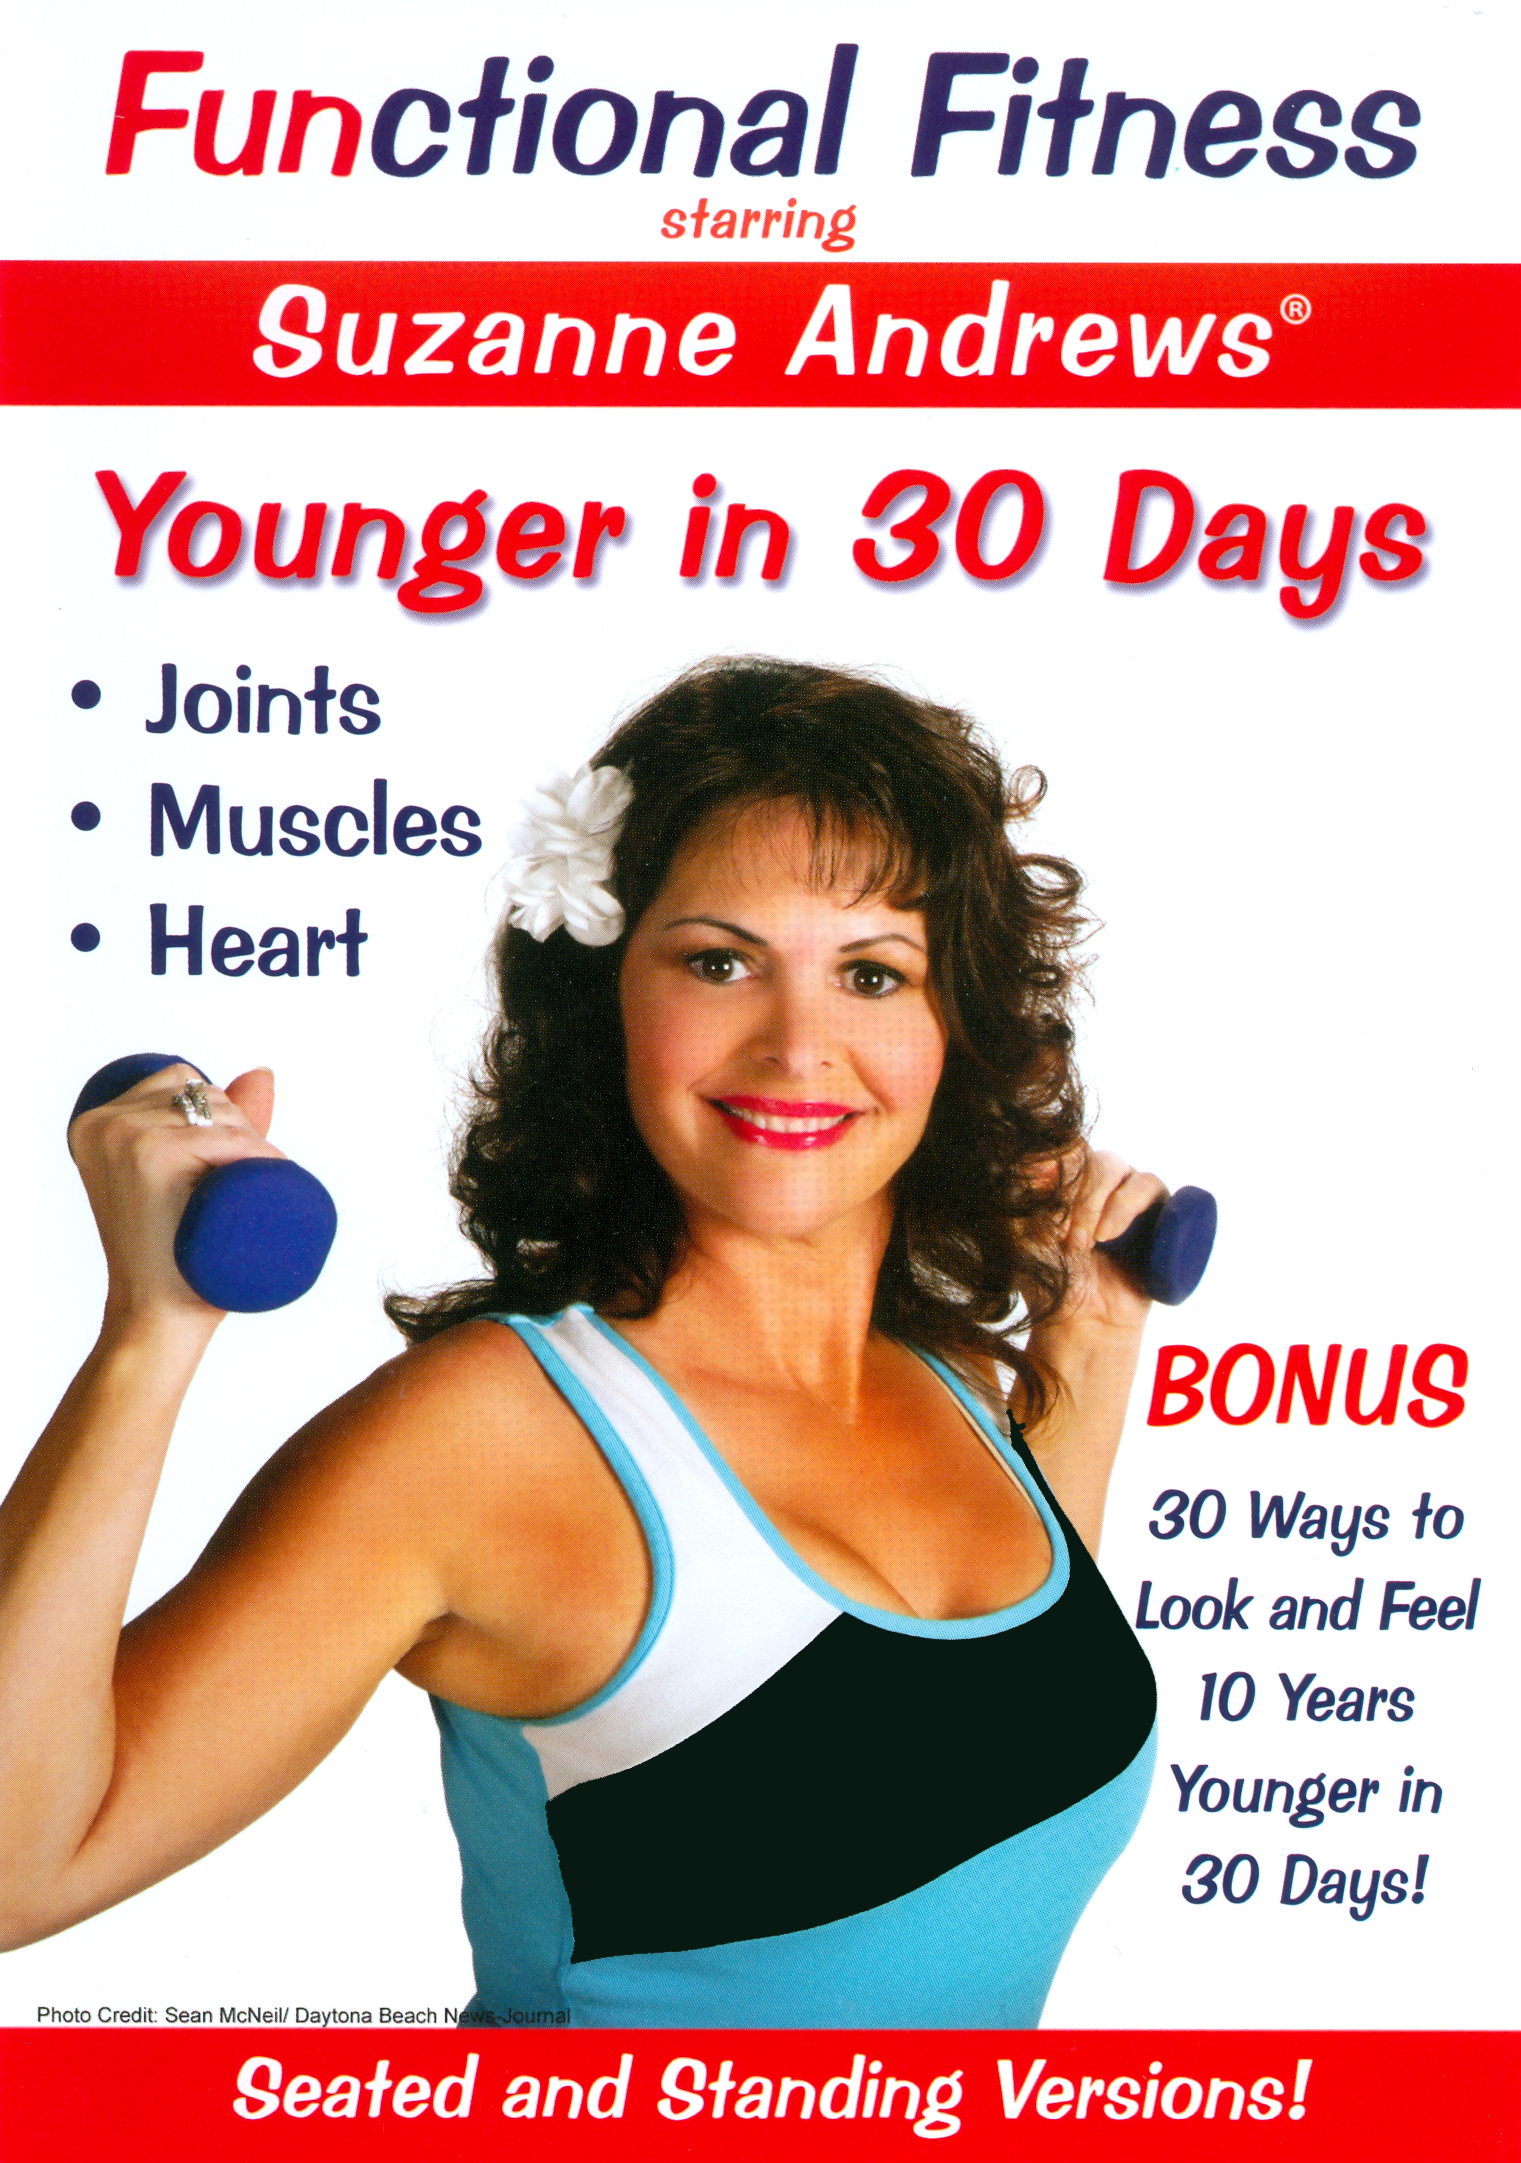 Suzanne Andrews: Functional Fitness - Younger in 30 Days